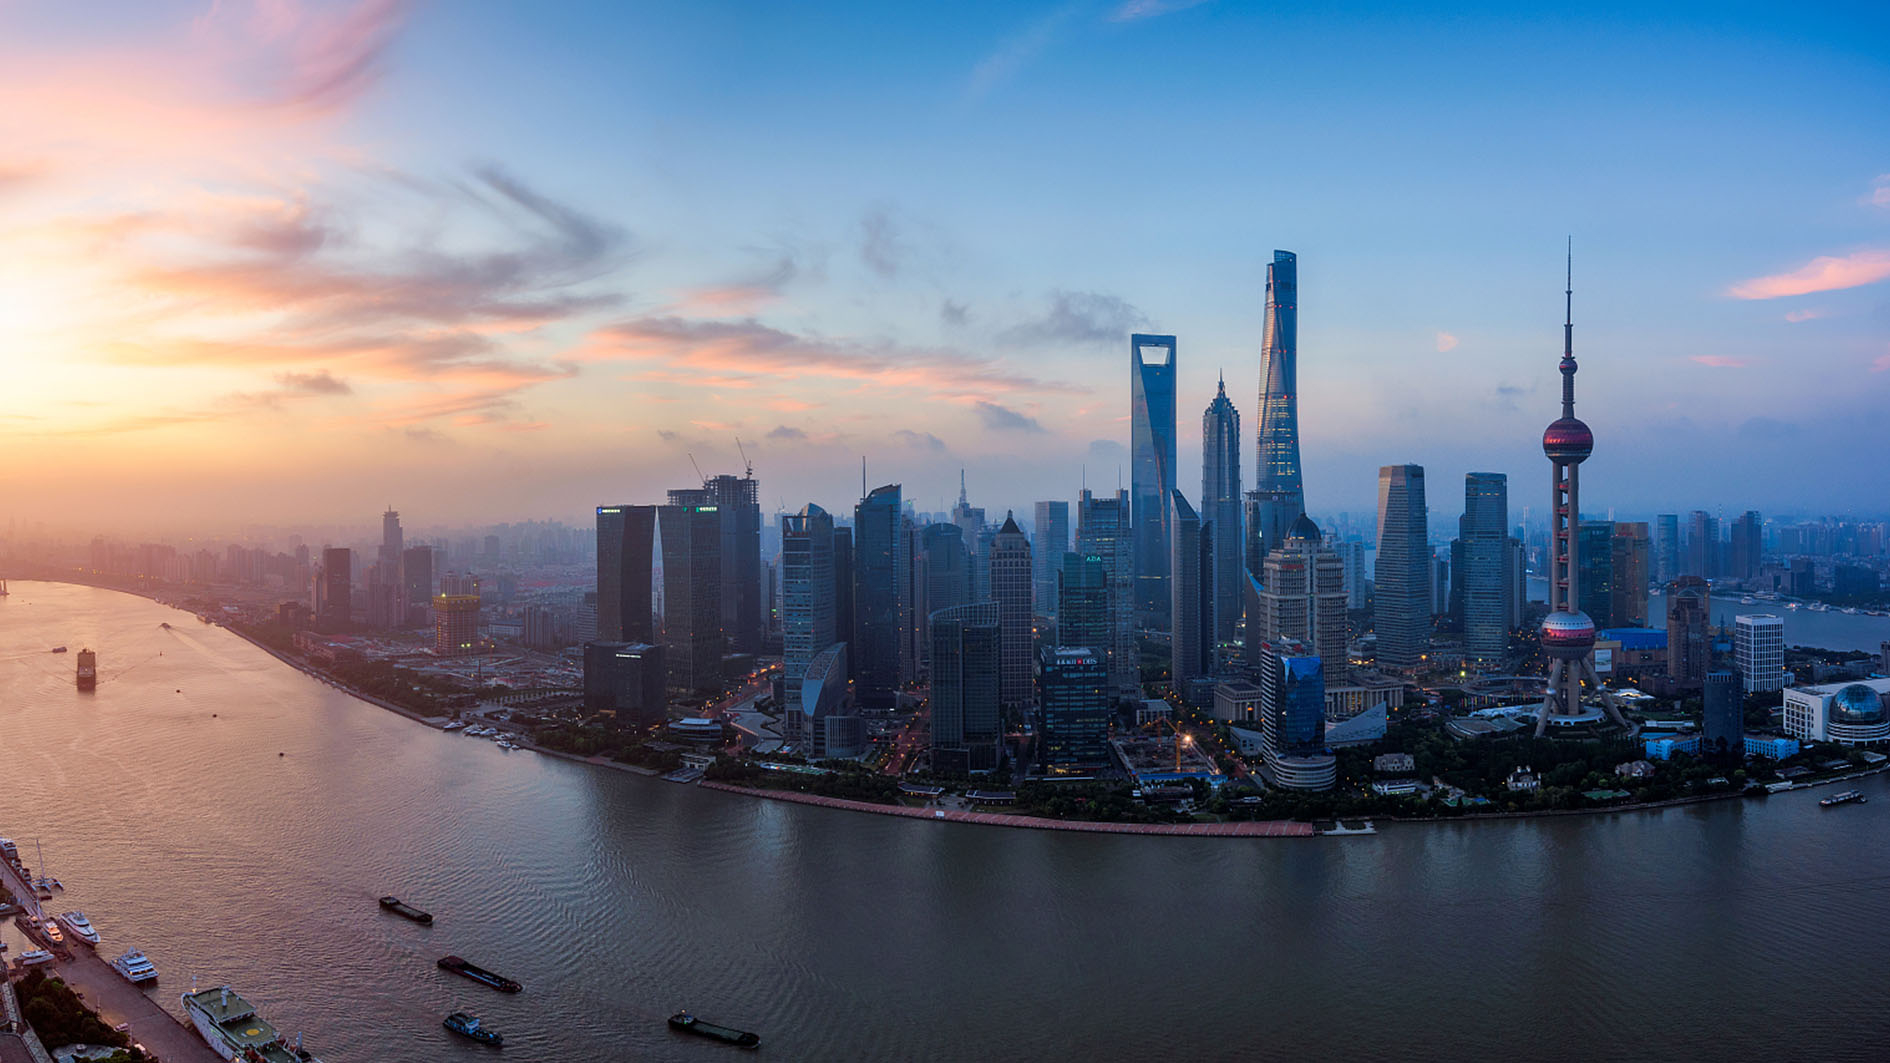 Shanghai to beef up high-tech industries in Pudong